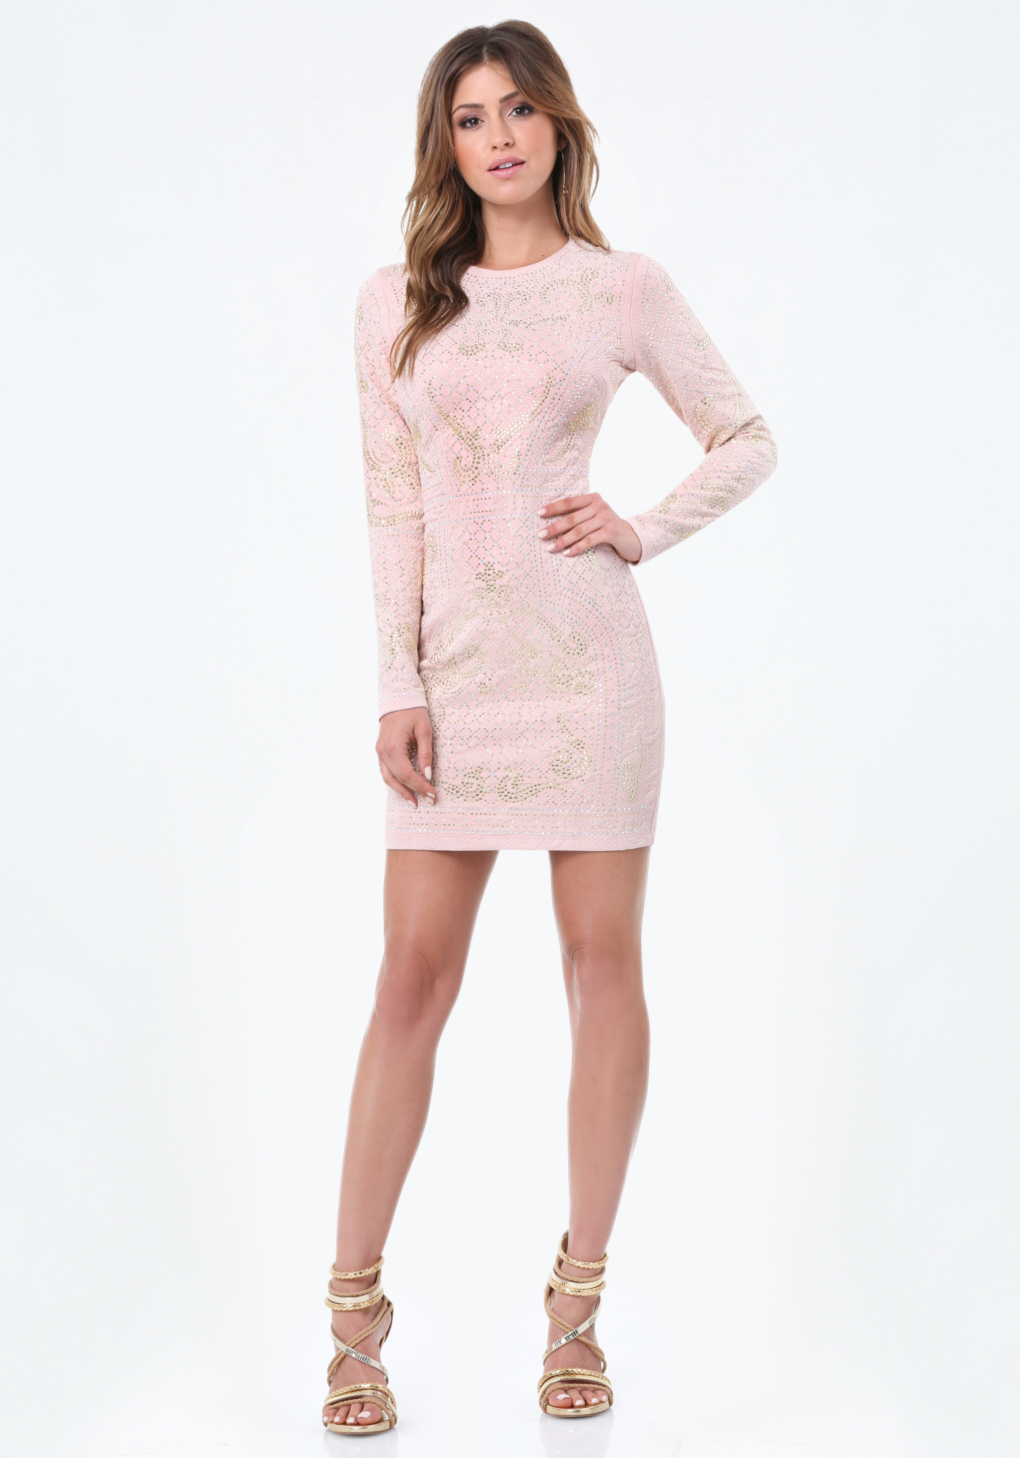 Bebe Studded Jacquard Dress In Pink Lyst